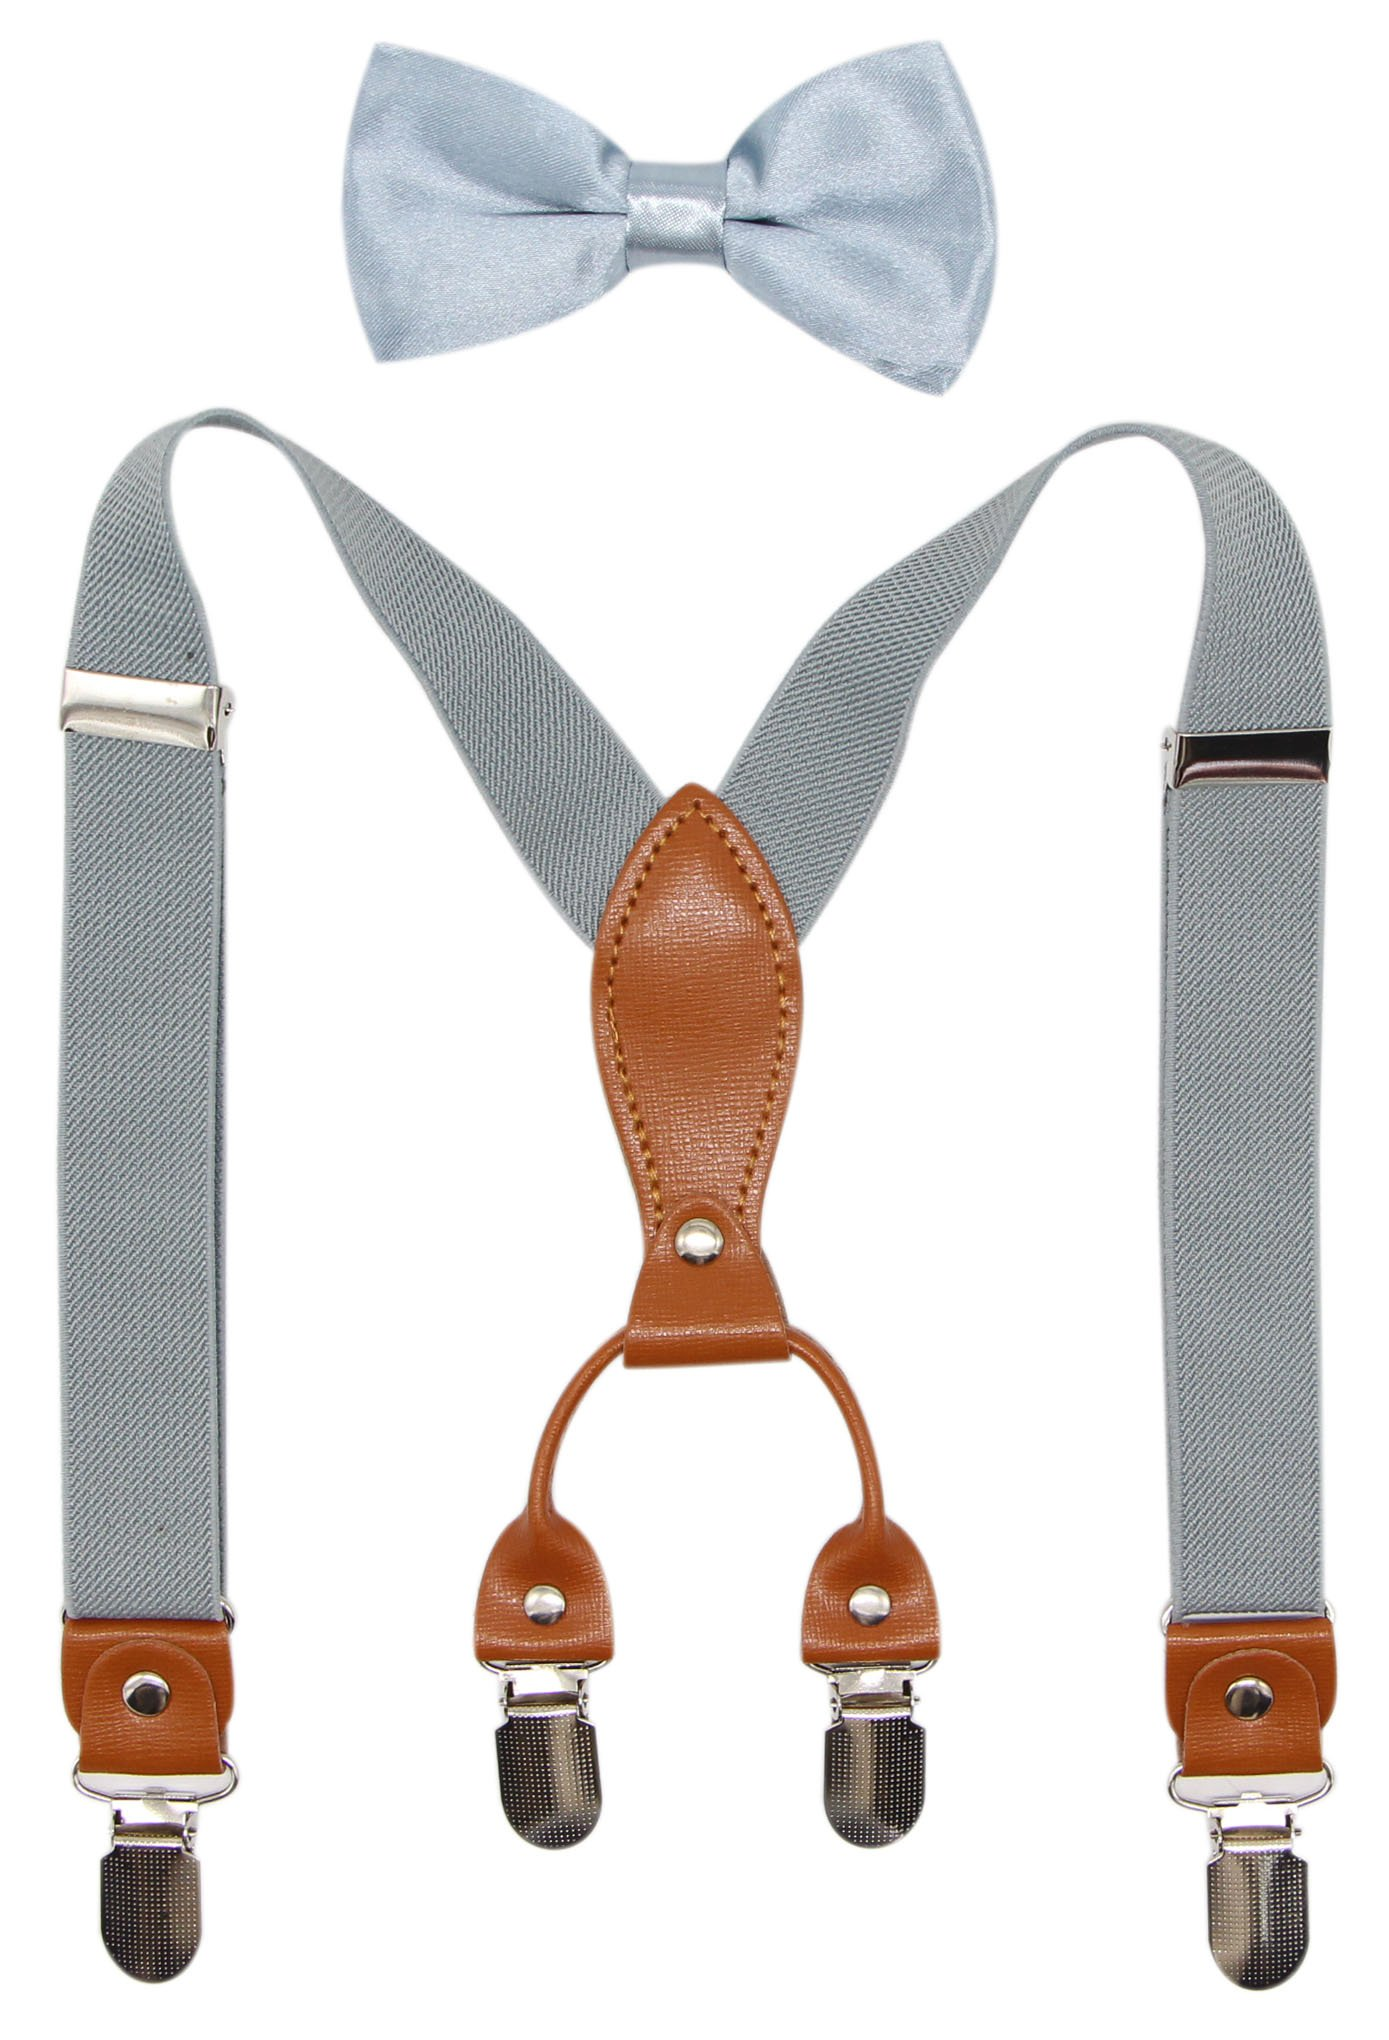 Suspenders & Bowtie Set for Kids and Baby - Adjustable Elastic X-Band Strong Clips Braces (Light Grey)